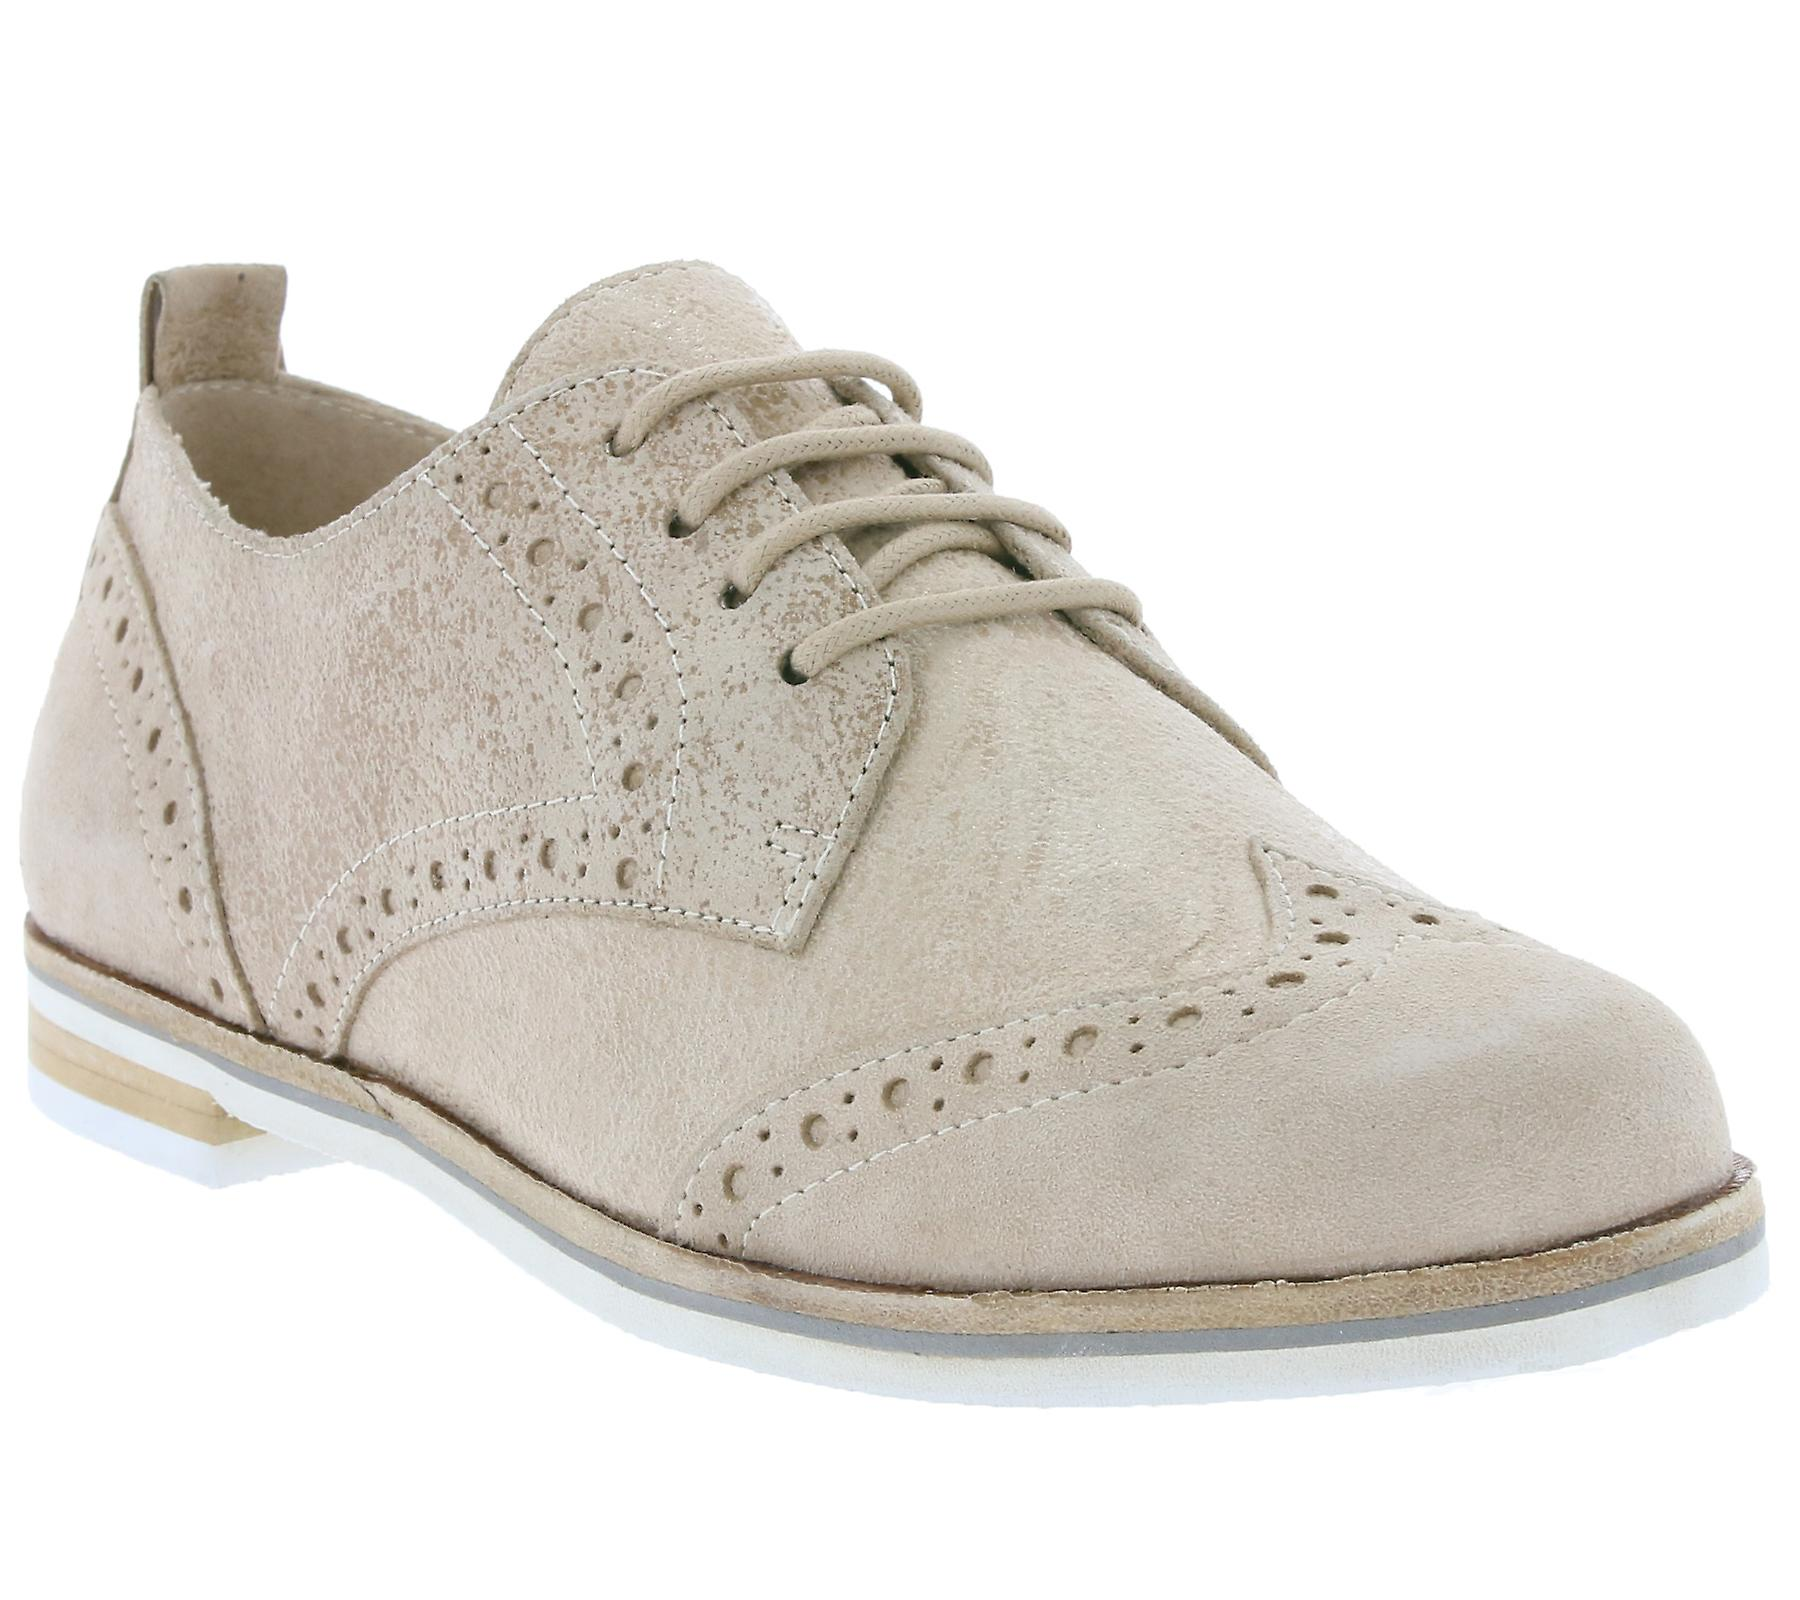 CAPRICE Brogue ladies genuine shoes leather shoes genuine beige f27138